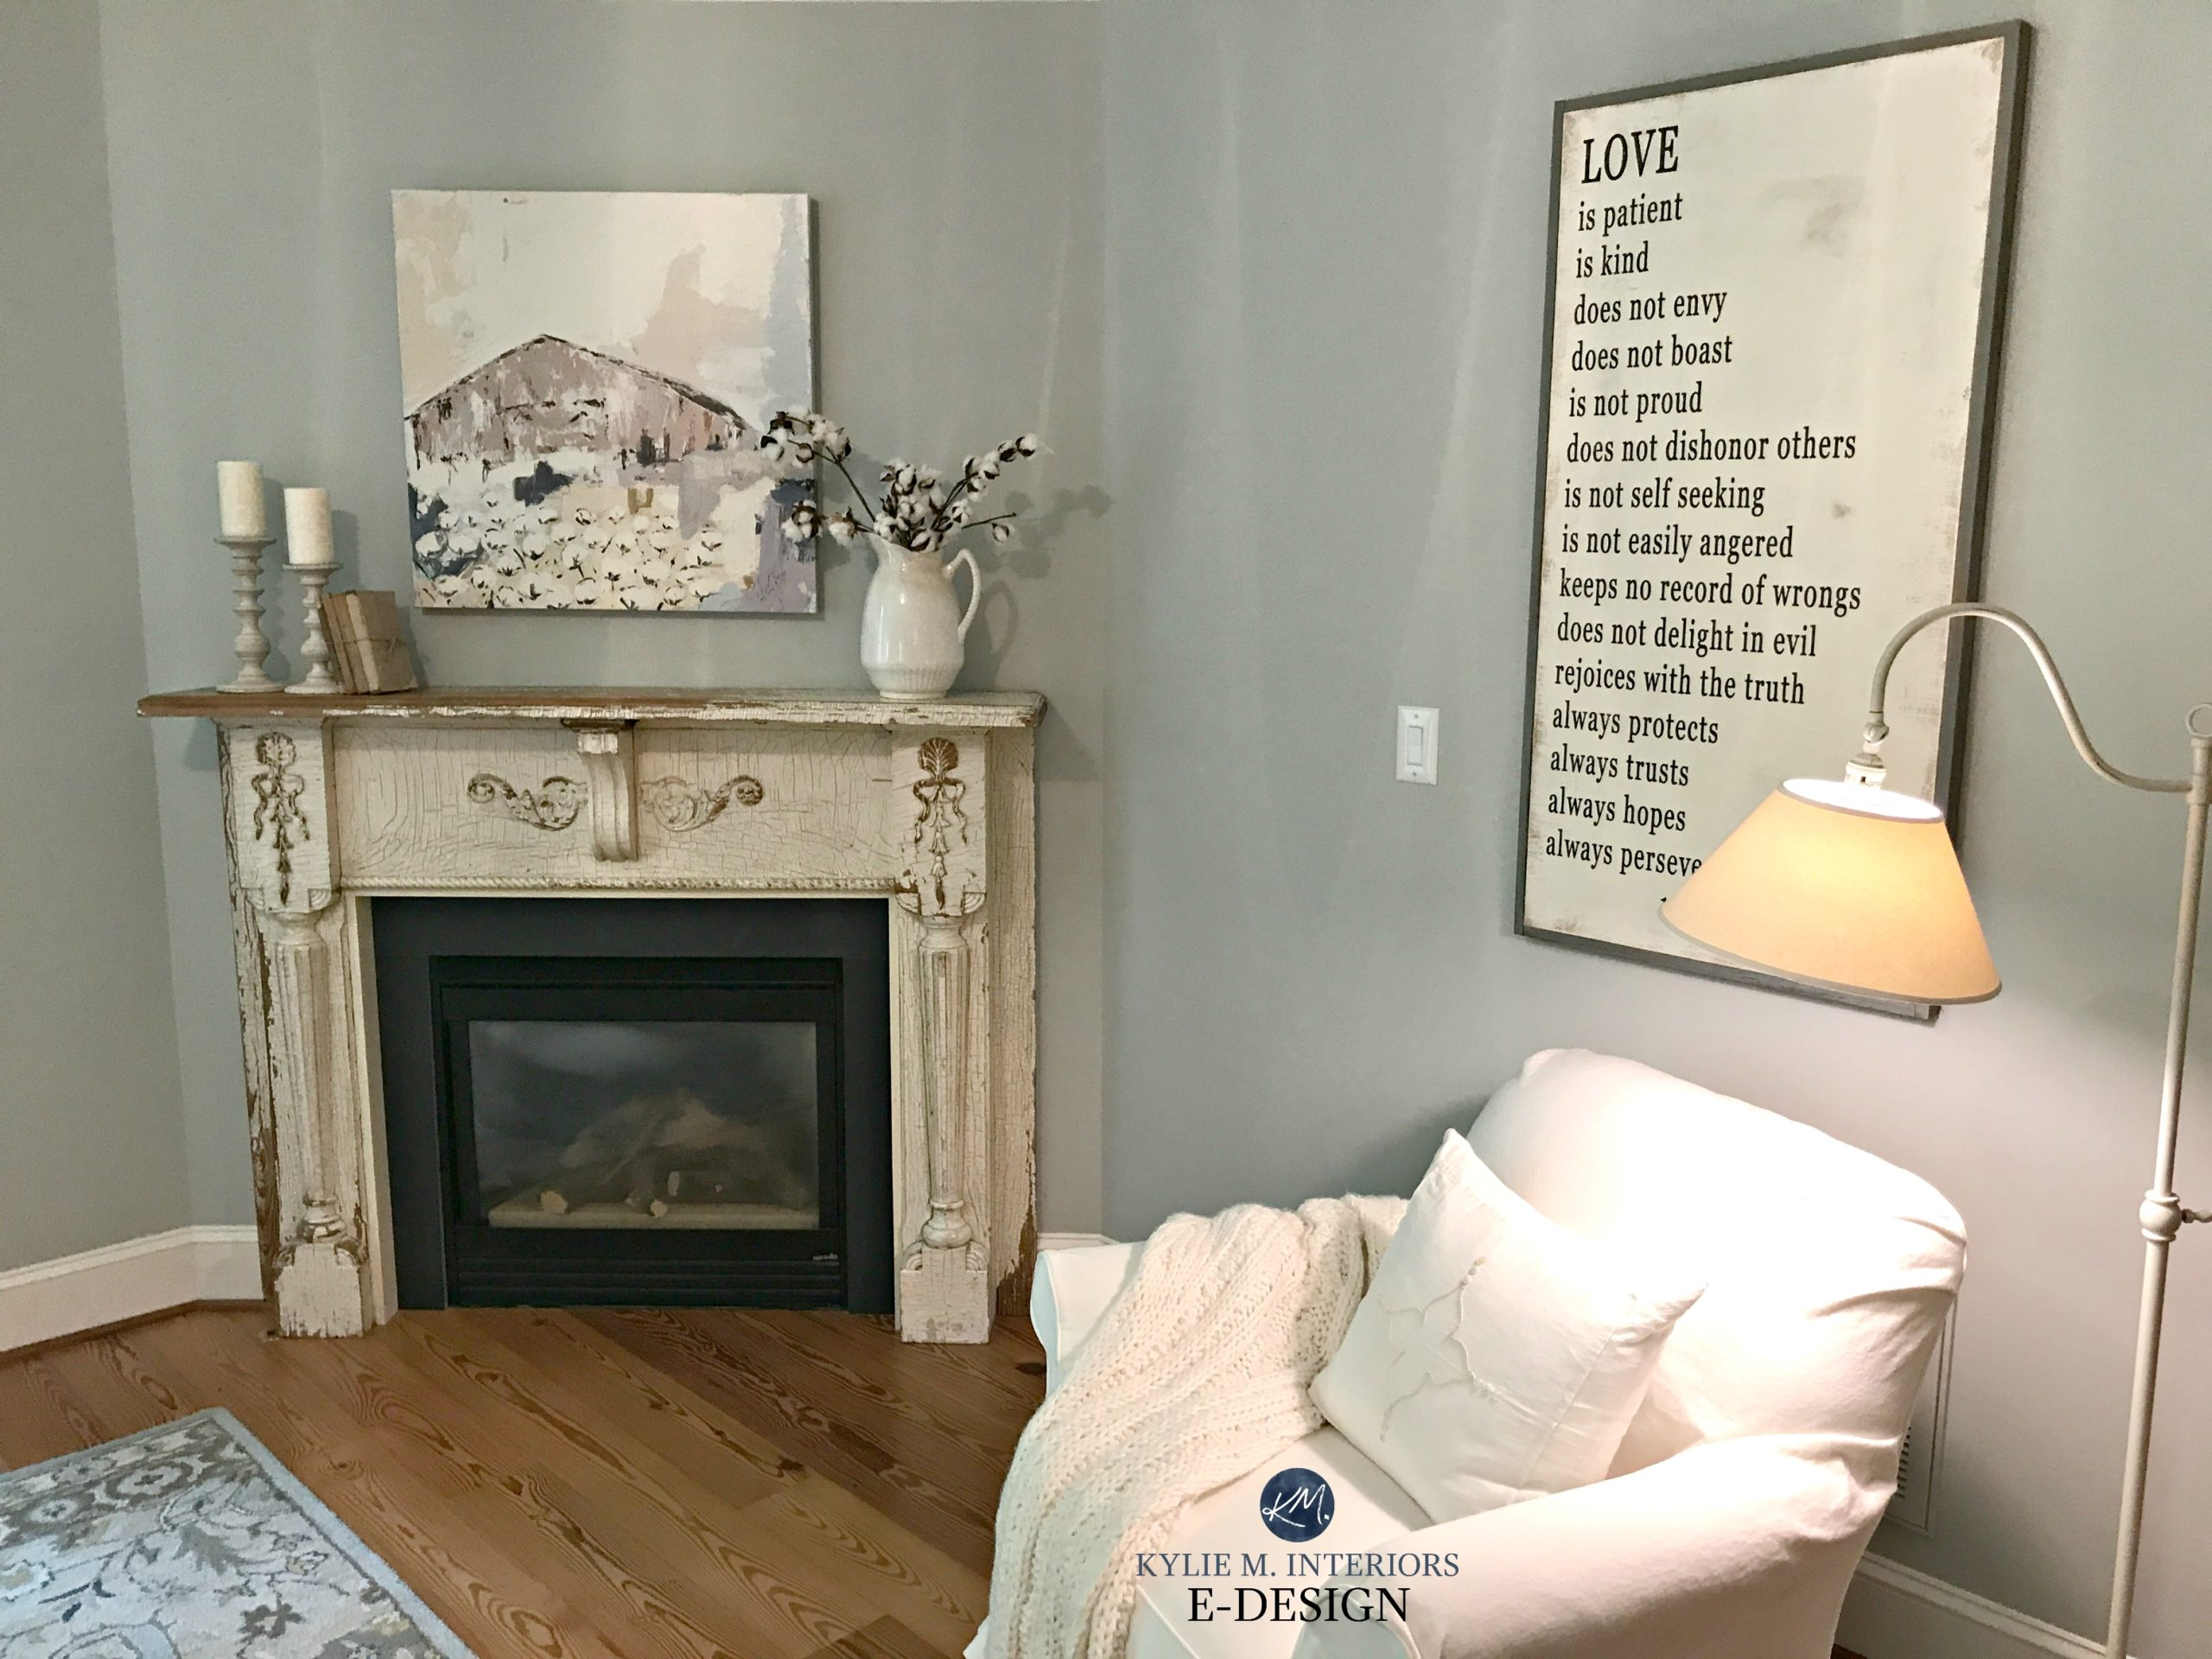 from on tv s for large space suite living master mansion malibu of apart fireplaces top has jordan also deandre comfortable photos fireplace there with inside a king the small bedroom bed